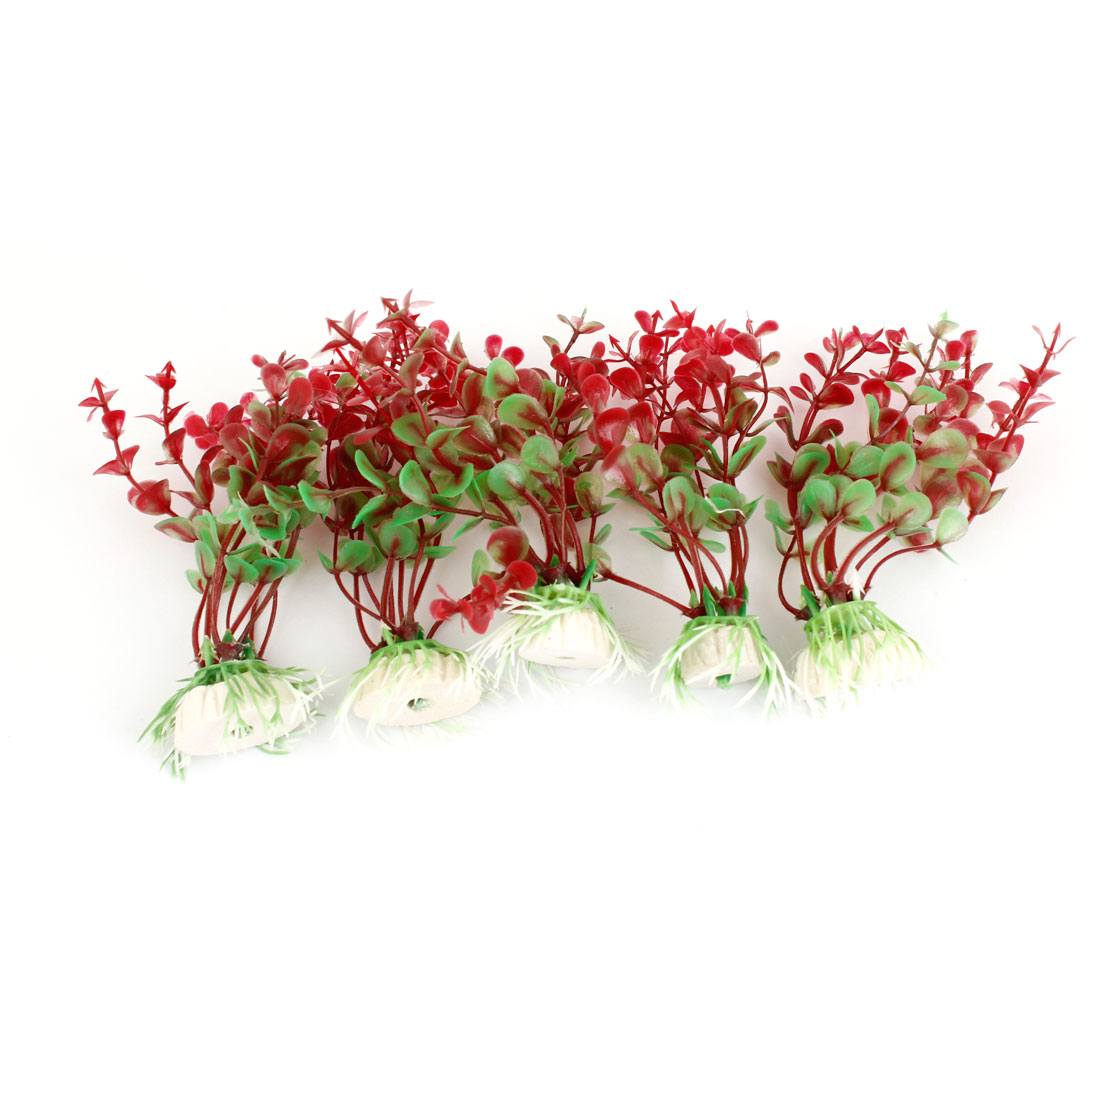 "Red Green Plastic Underwater Grass Decor 4.3"" Height 5 Pcs for Aquarium Fish Tank"